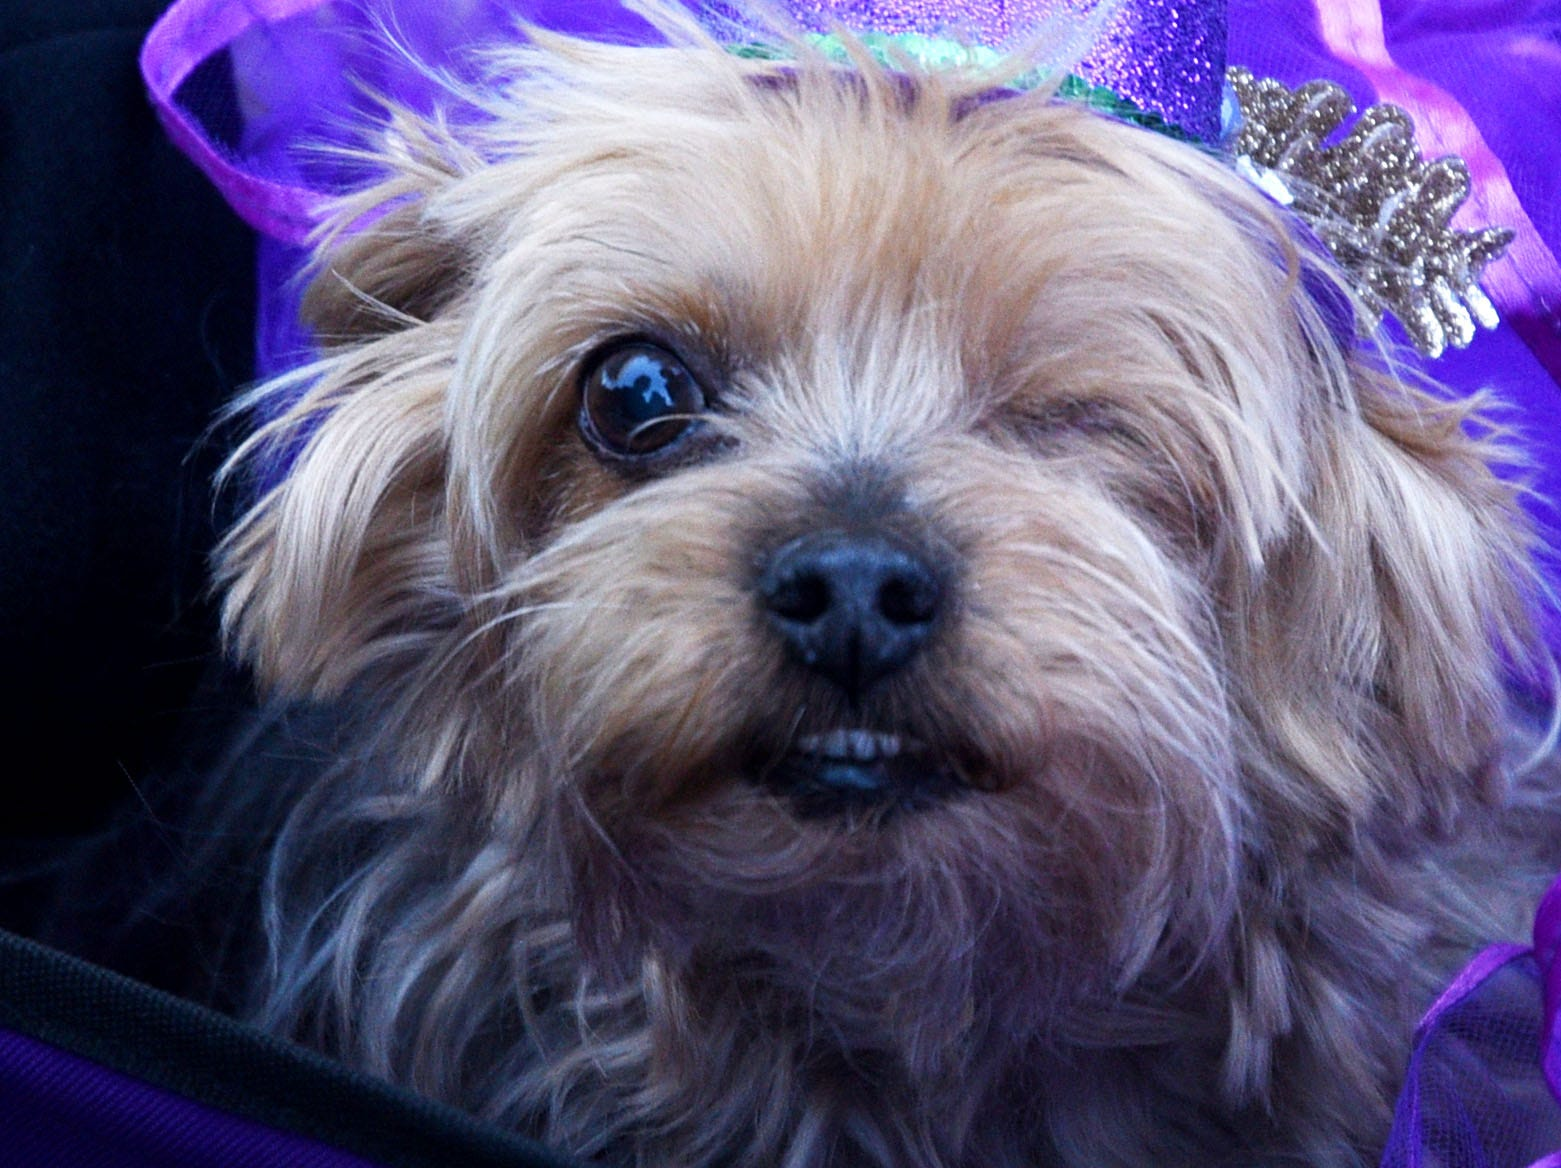 Barkus and Meoux Parade 2019 Sunday February 24, 2019 at Reeves Marine in Bossier City.